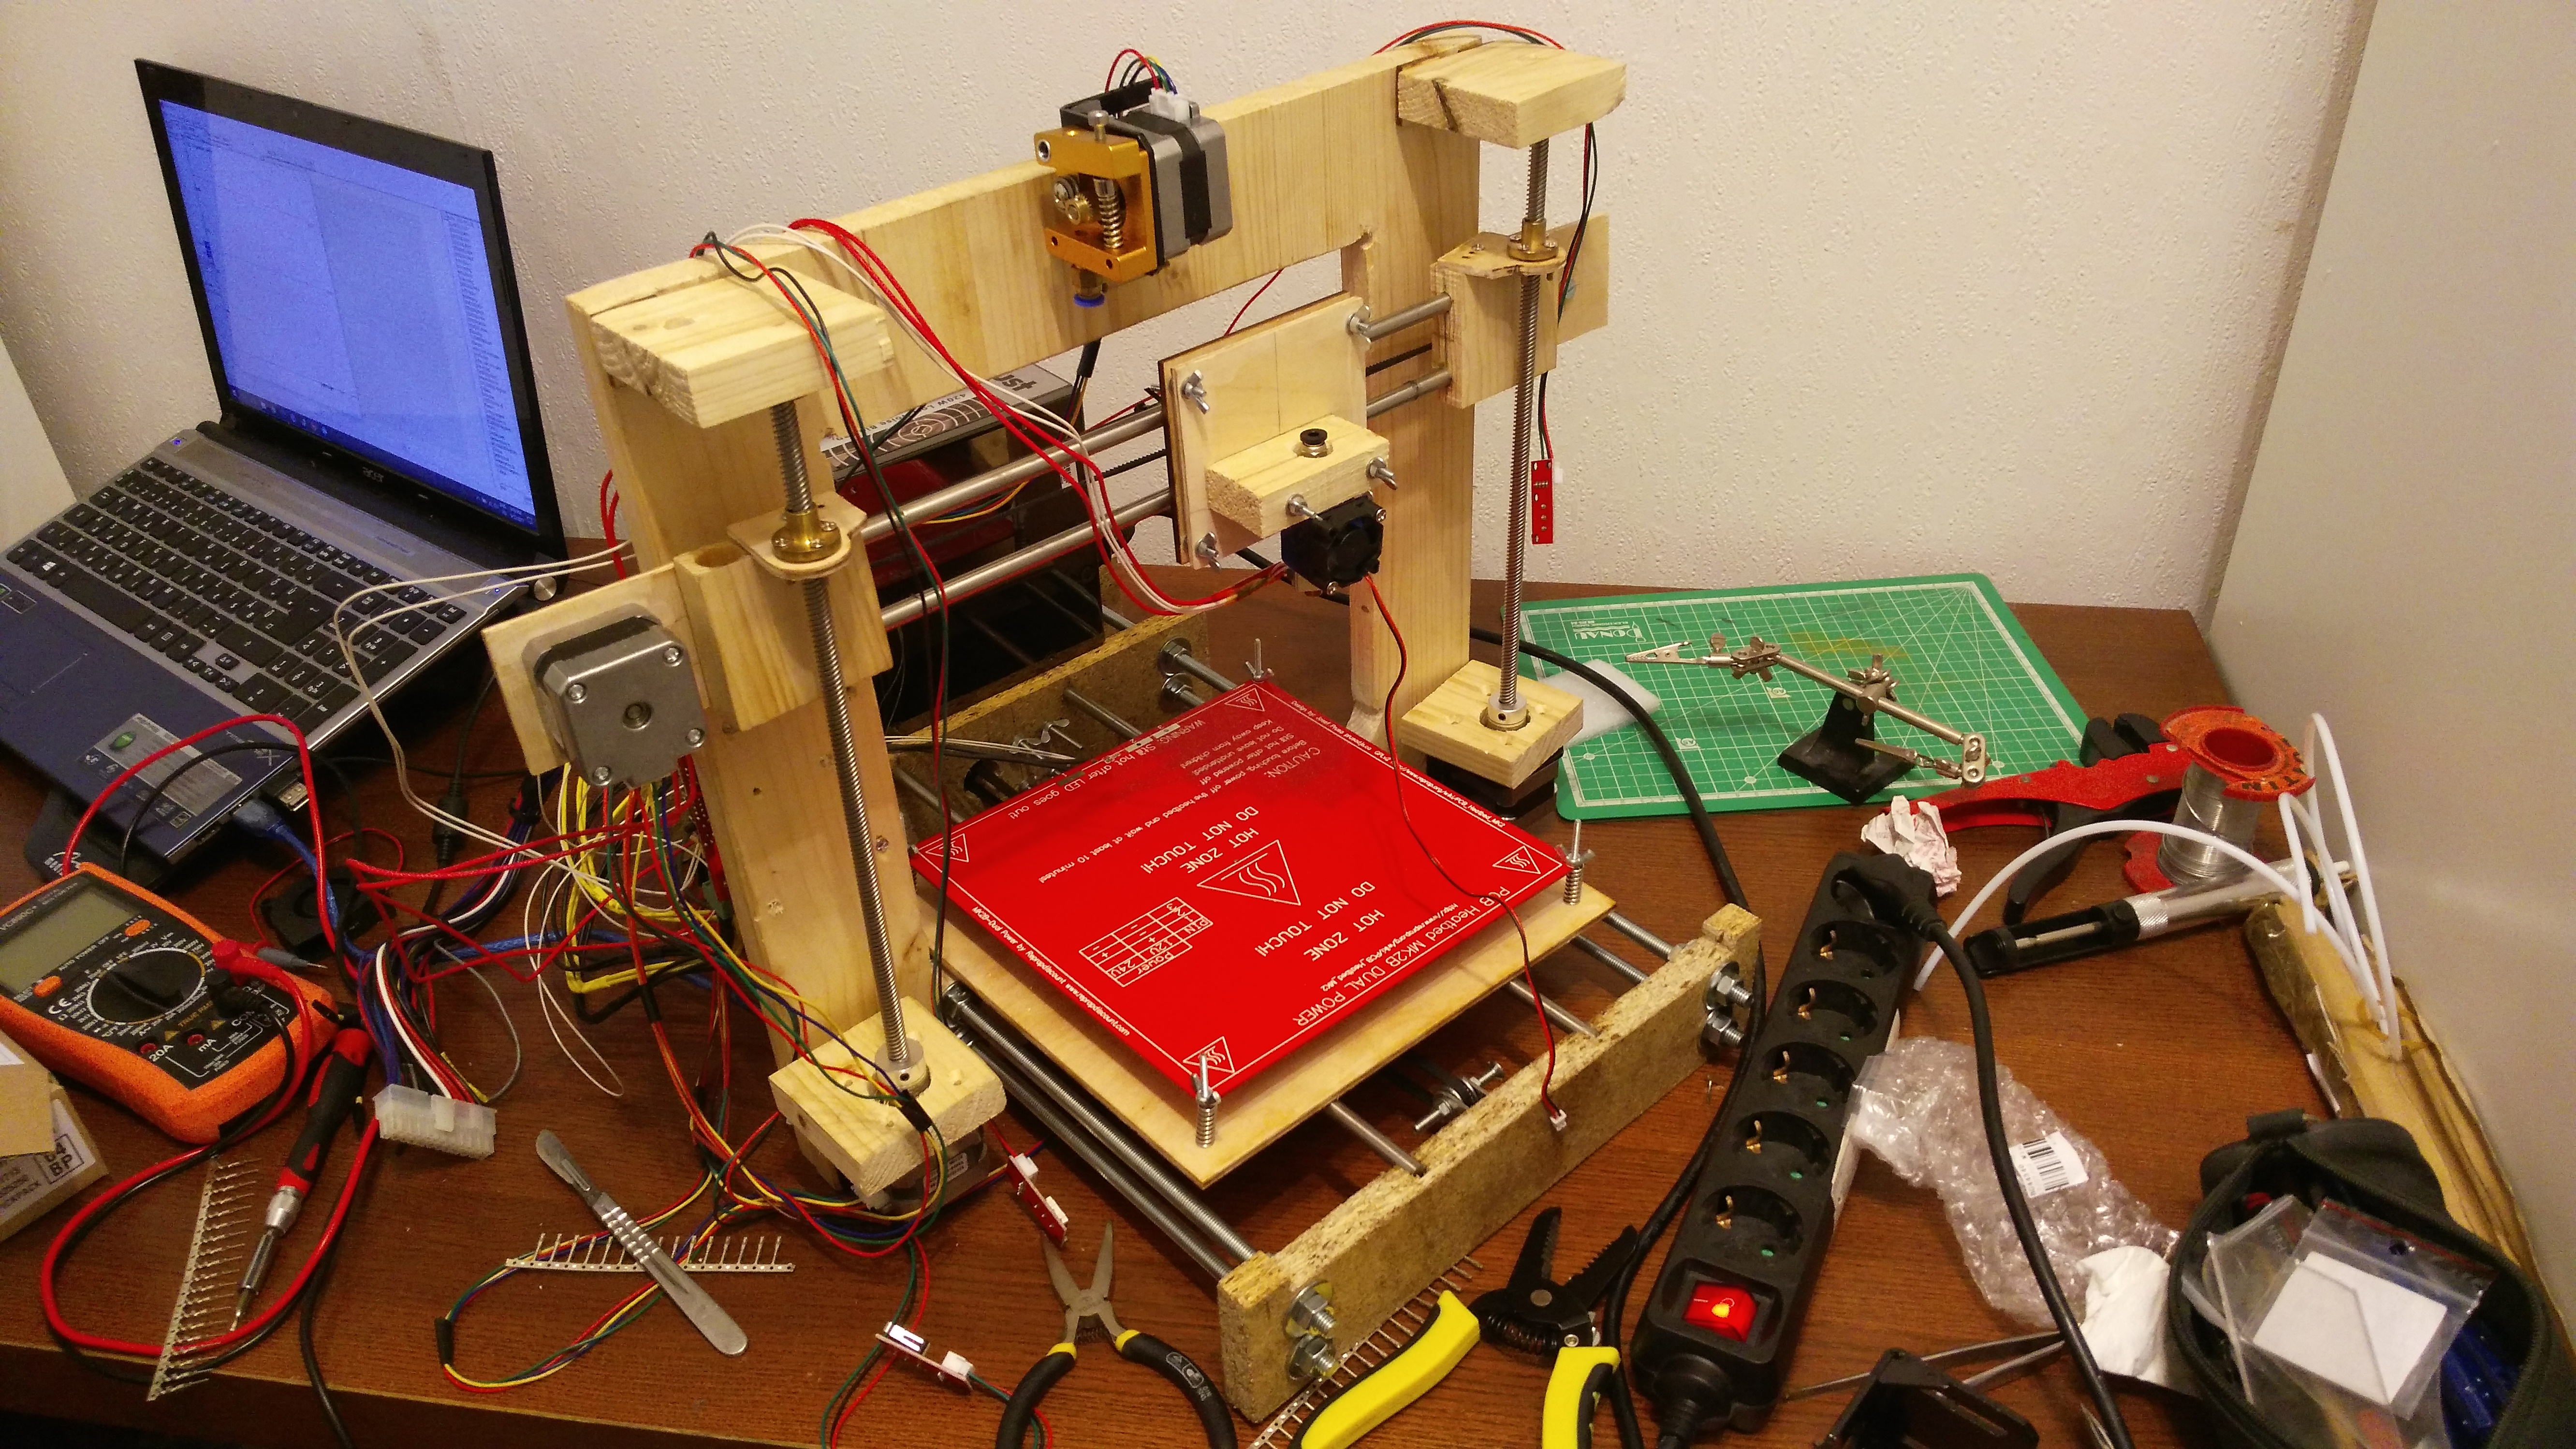 Picture of DIY 3D Printer: How to Make a 3D Printer That Anyone Can Do